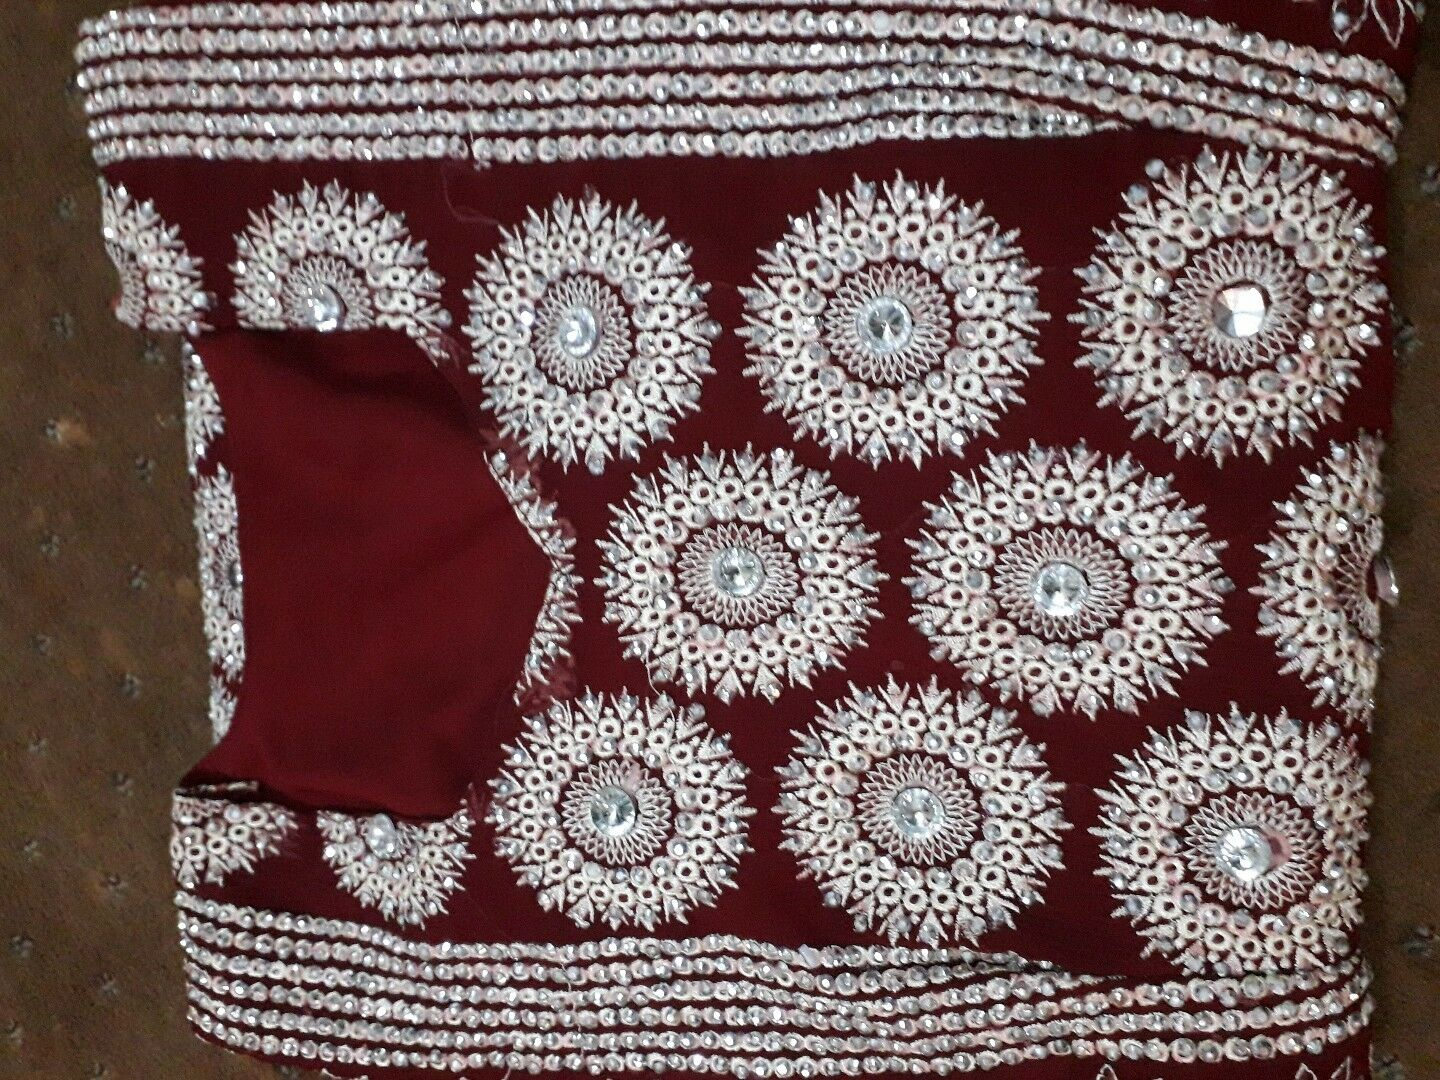 Red And Maroon Indian Pakistani Wedding Dress With Nice Flower Designs